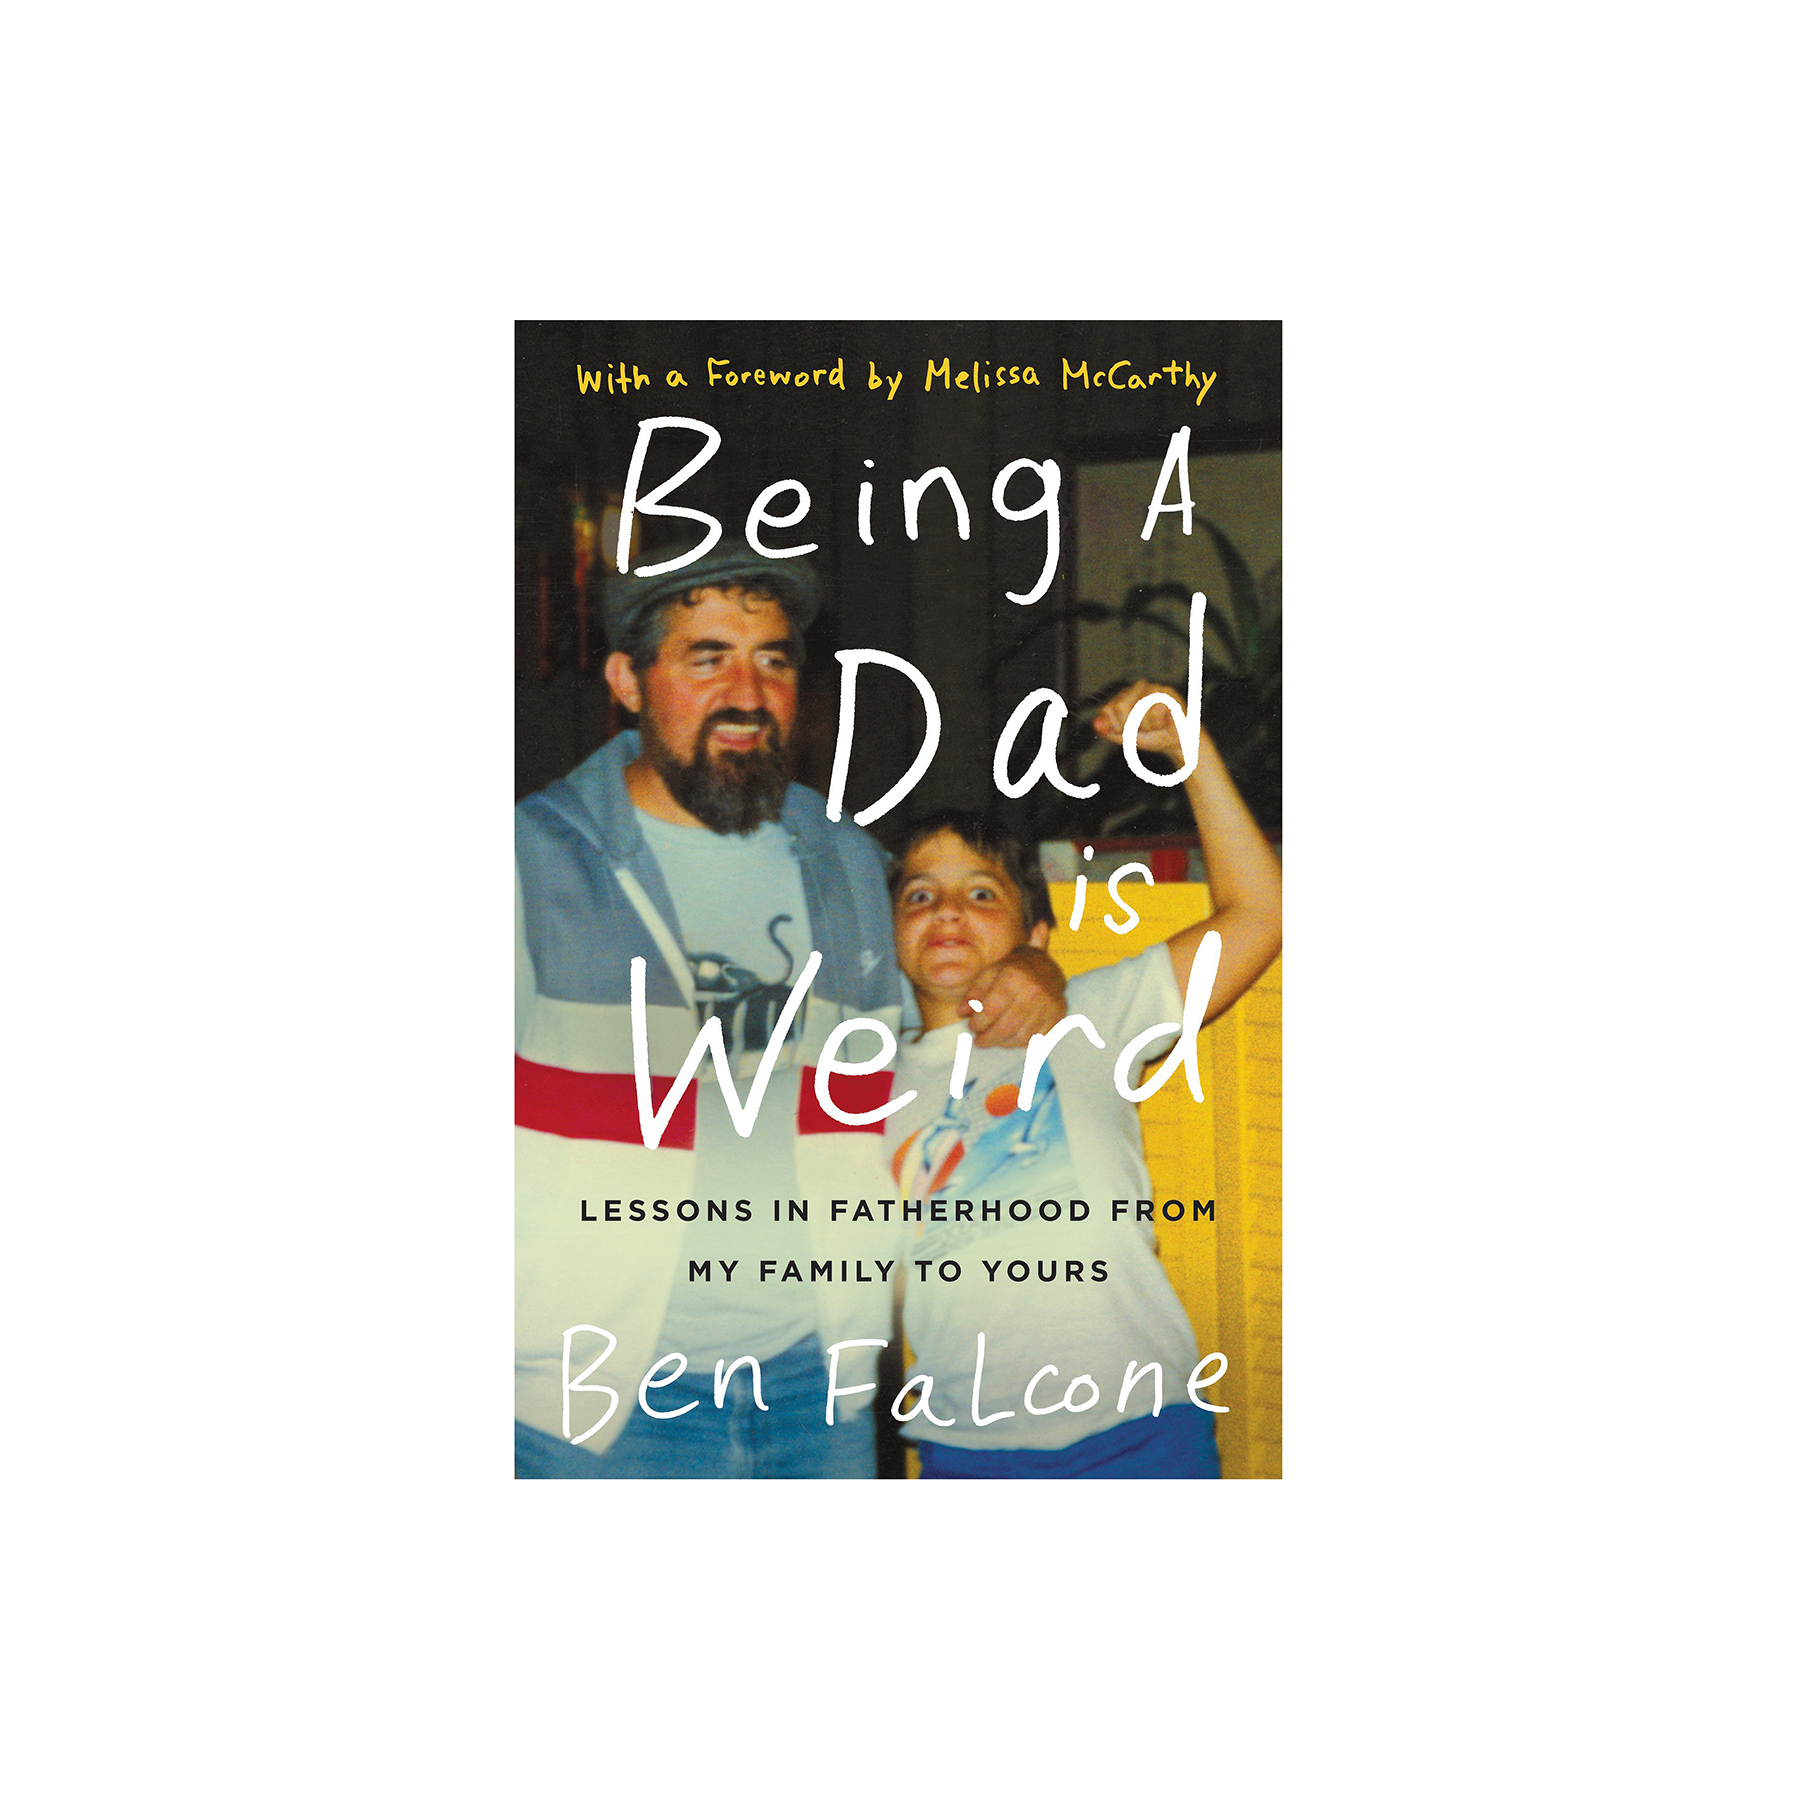 Being a Dad Is Weird: Lessons in Fatherhood from My Family to Yours, by Ben Falcone